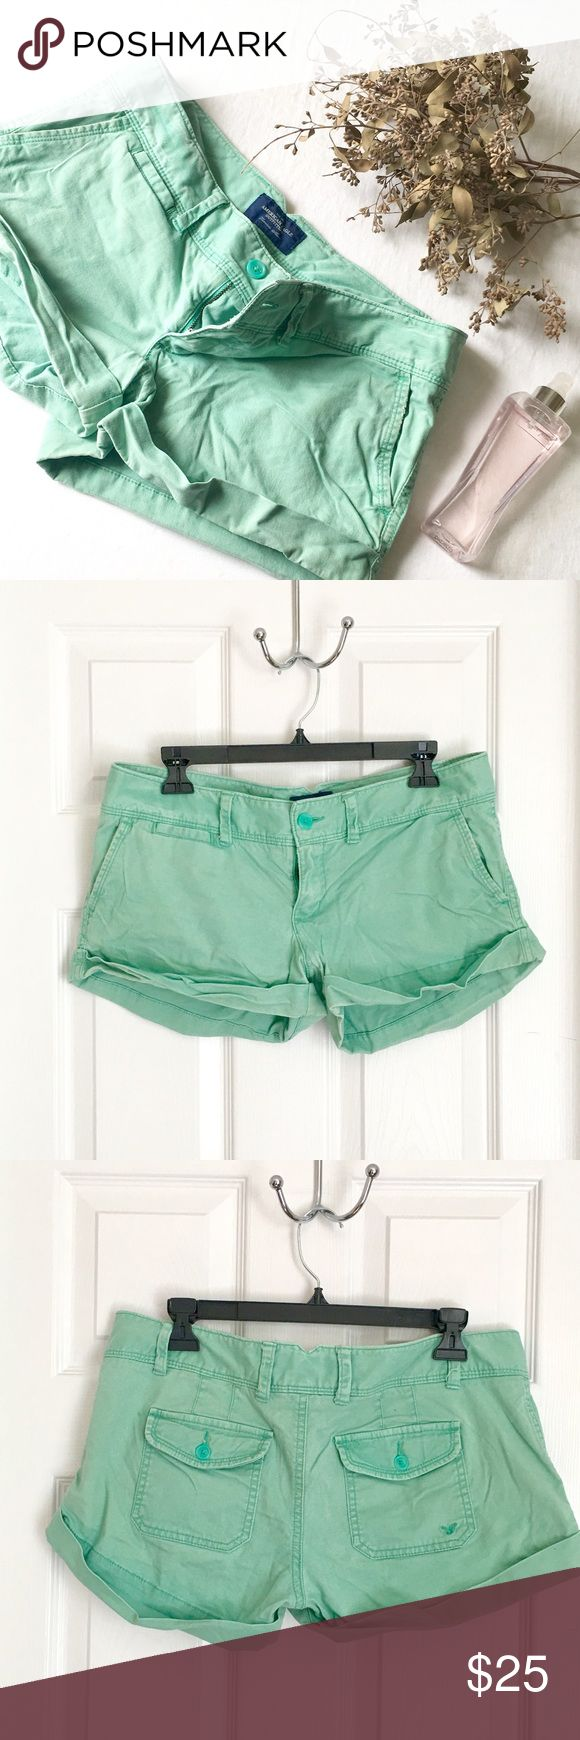 "American Eagle Mint Green ""Favorite Short"" American Eagle Outfitters Mint Green ""Favorite Short"".  Distressed with cuffs. Back pockets. Button and metal clasp closure. 98%Cotton, 2% Spandex. Made in Sri Lanka American Eagle Outfitters Shorts"